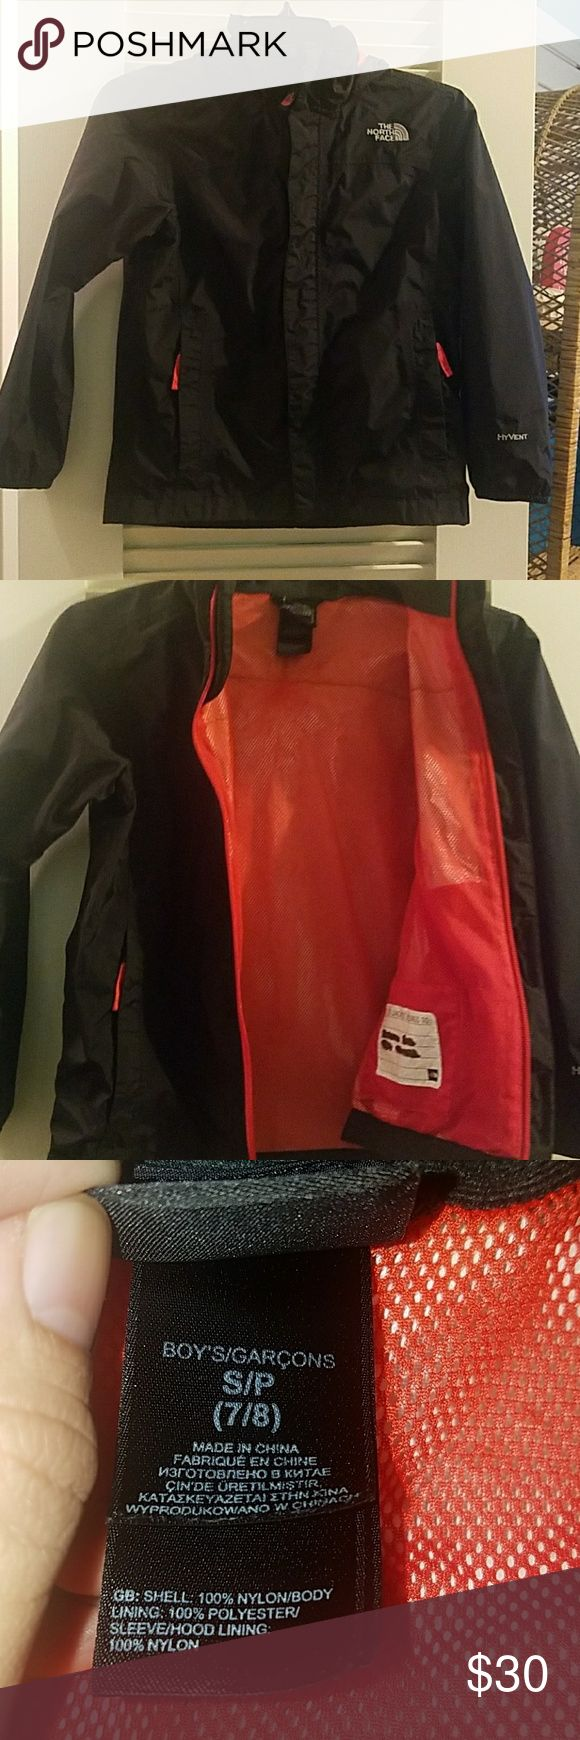 The North Face Resolve jacket boys Small TNF resolve rain jacket retails $69.95 size small boys 7/8 on black and red.  Name covered with a permanent marker inside.  Great condition! The North Face Jackets & Coats Raincoats